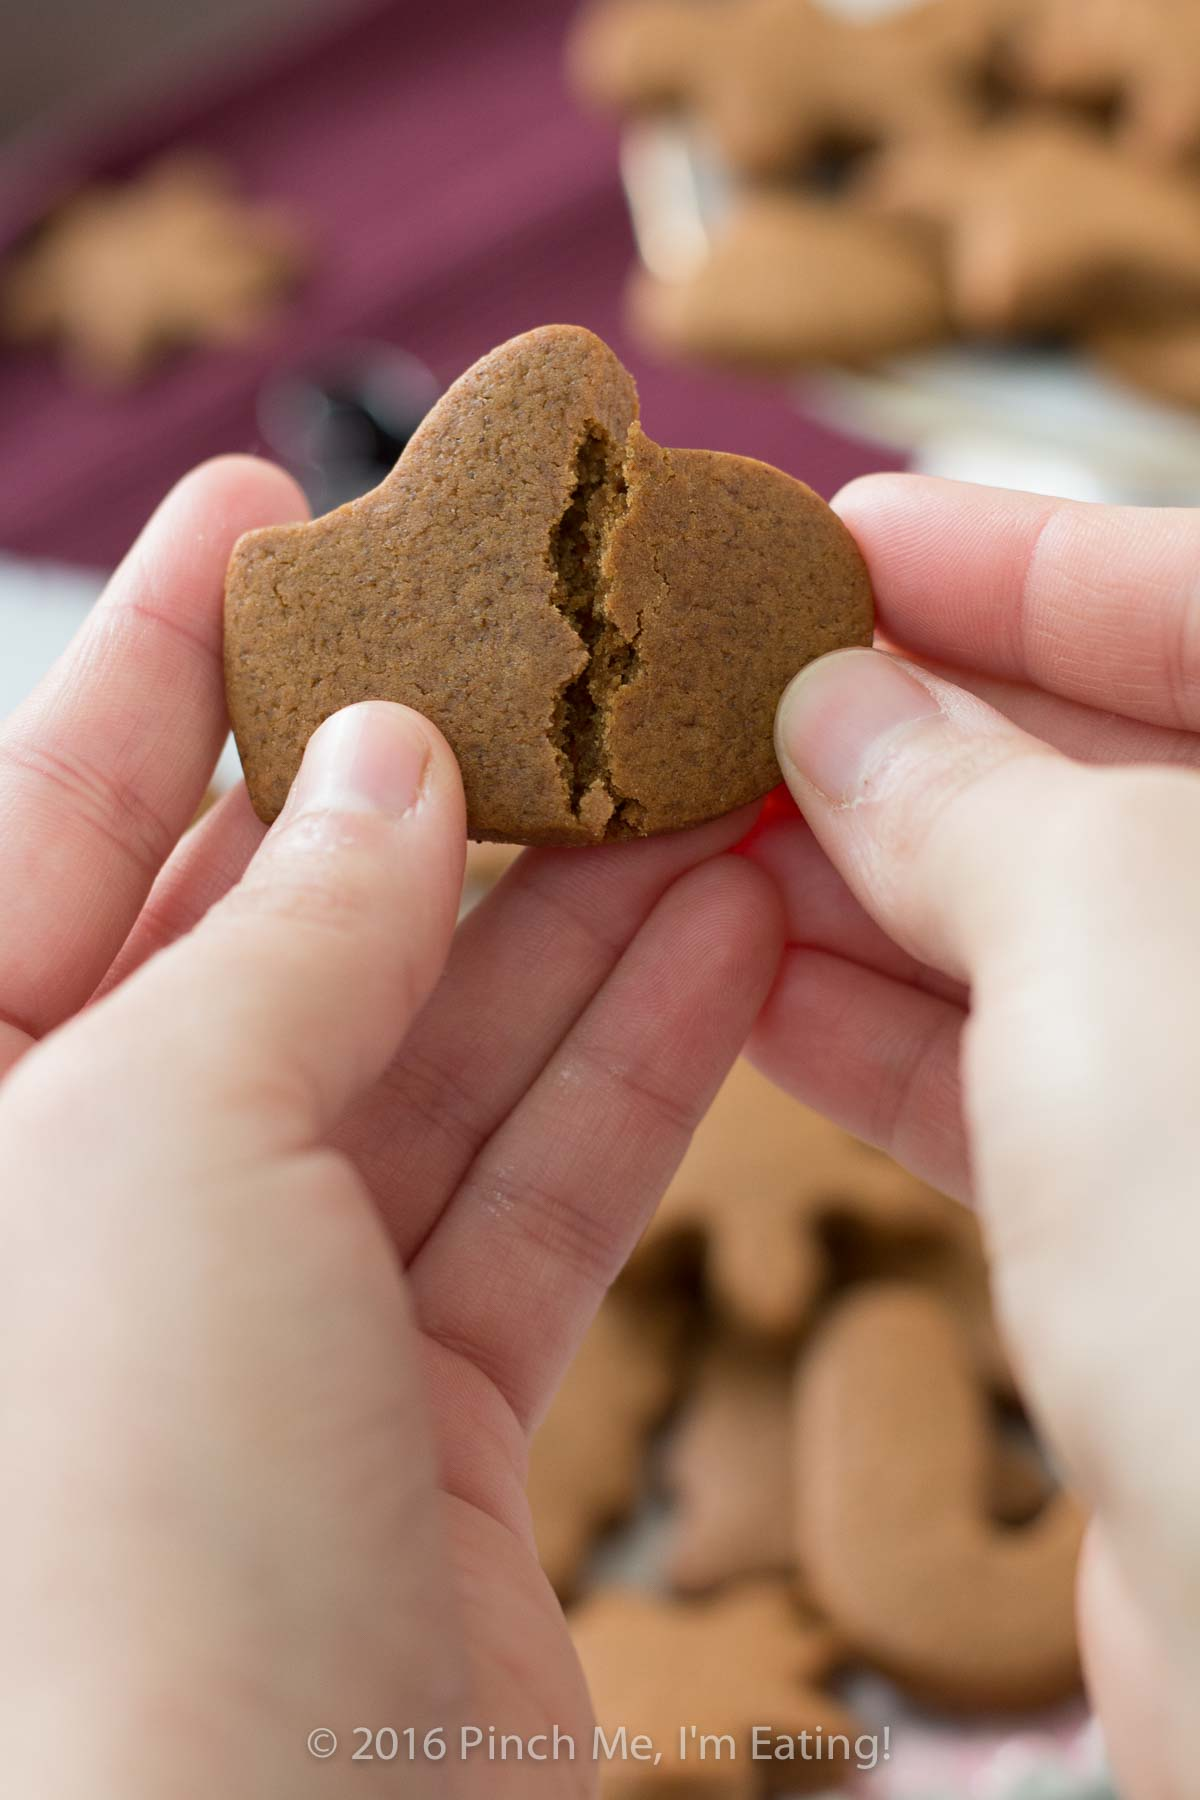 Hands breaking apart chewy gingerbread cookie to show soft texture